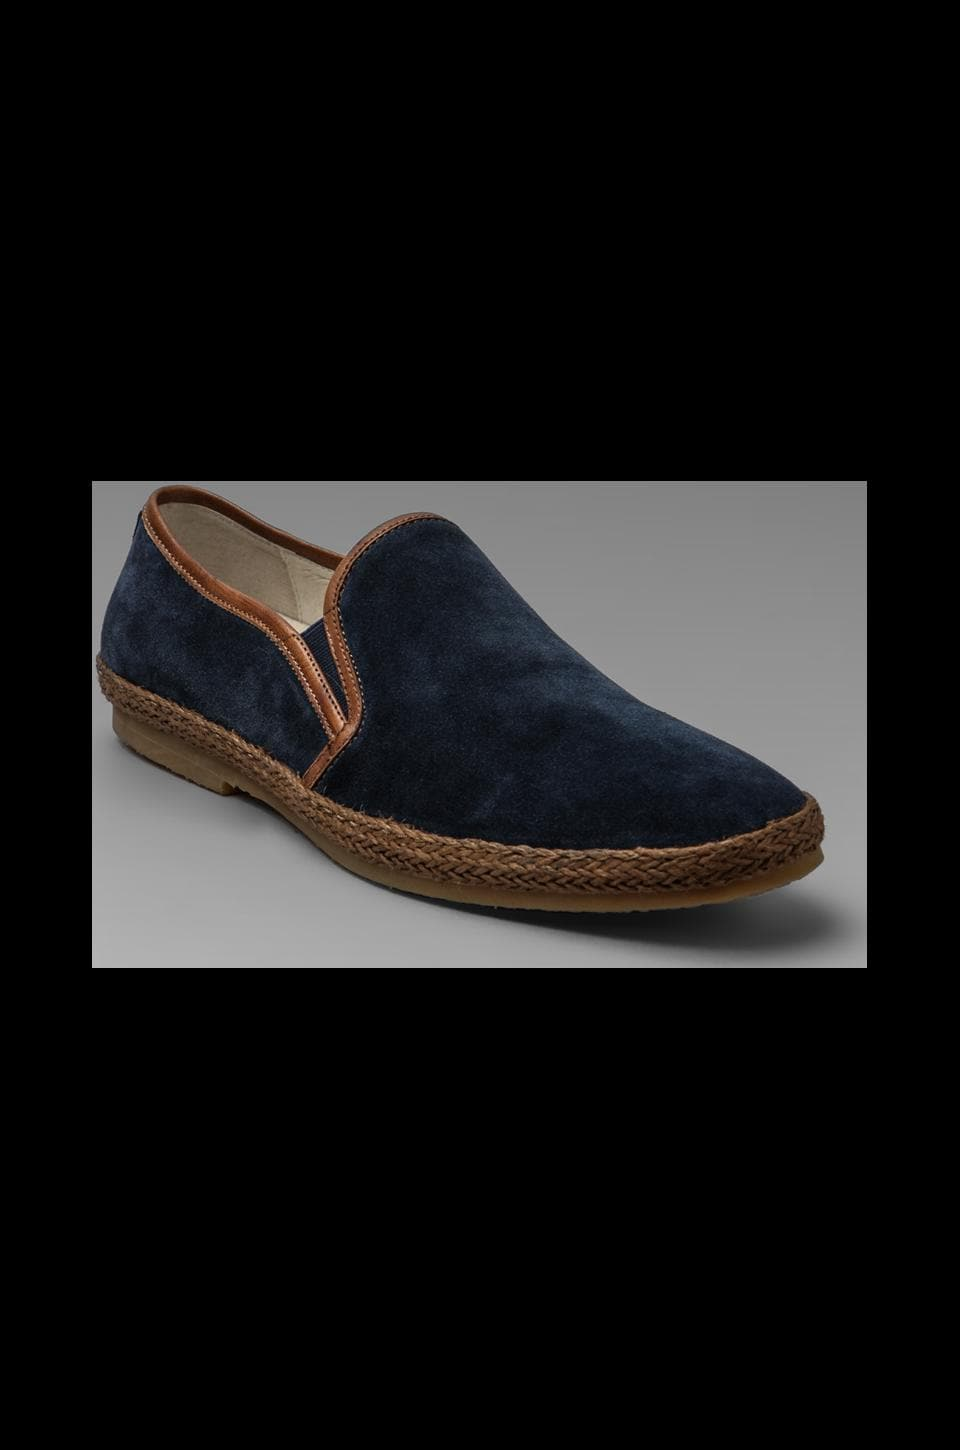 Rogue Fiesta Slip on in Navy